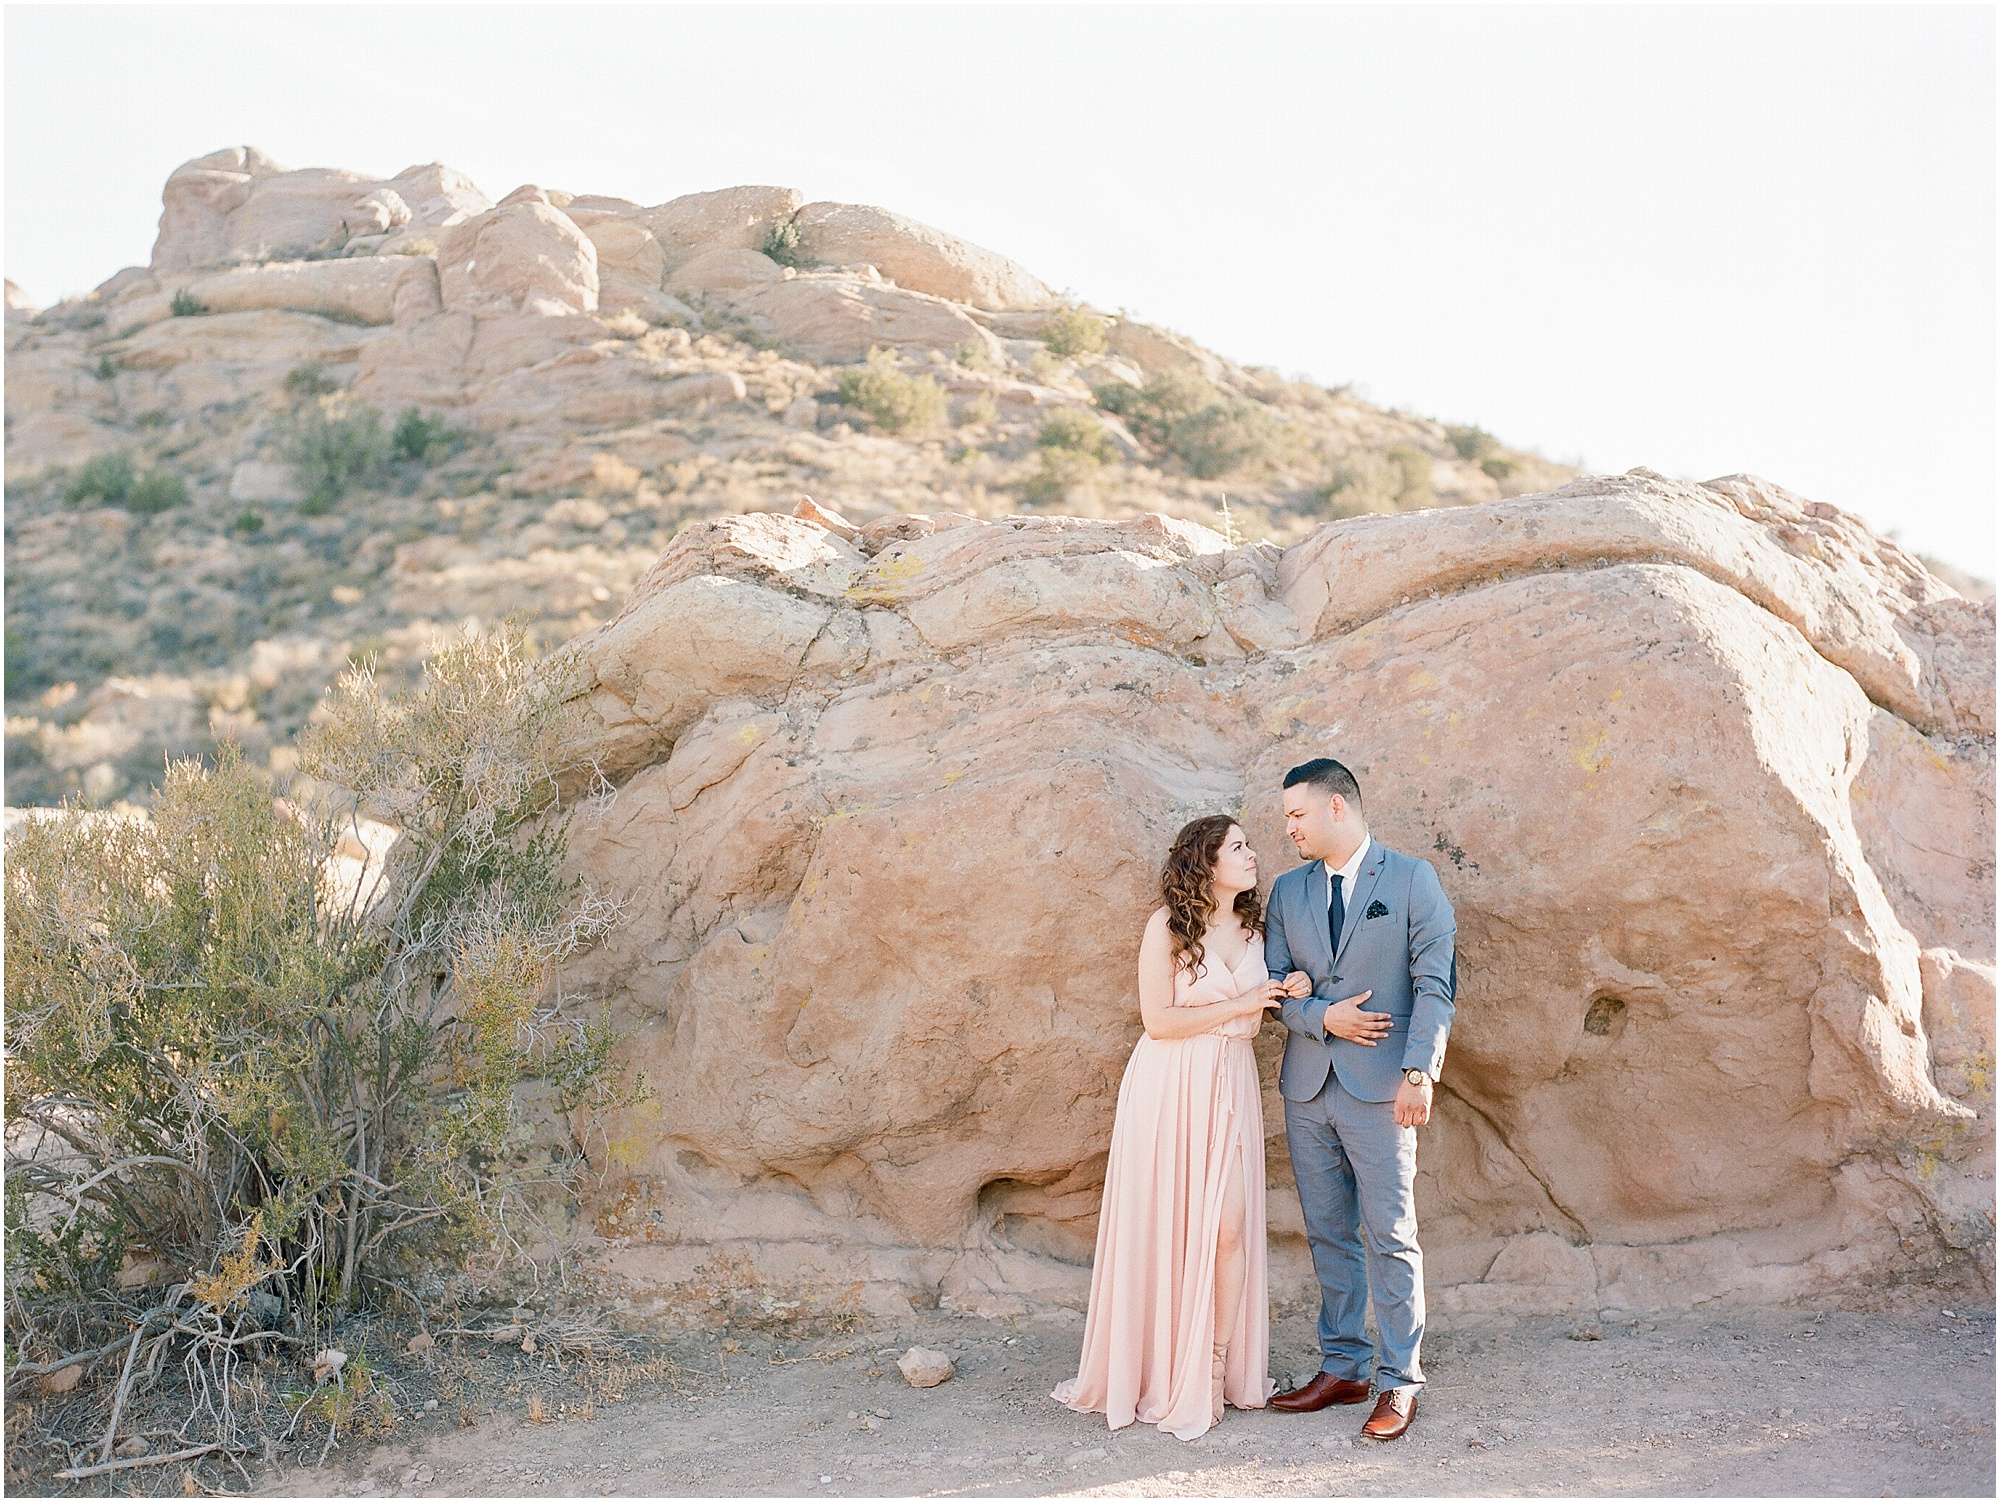 Vasquez-rocks-engagement-session-34.jpg